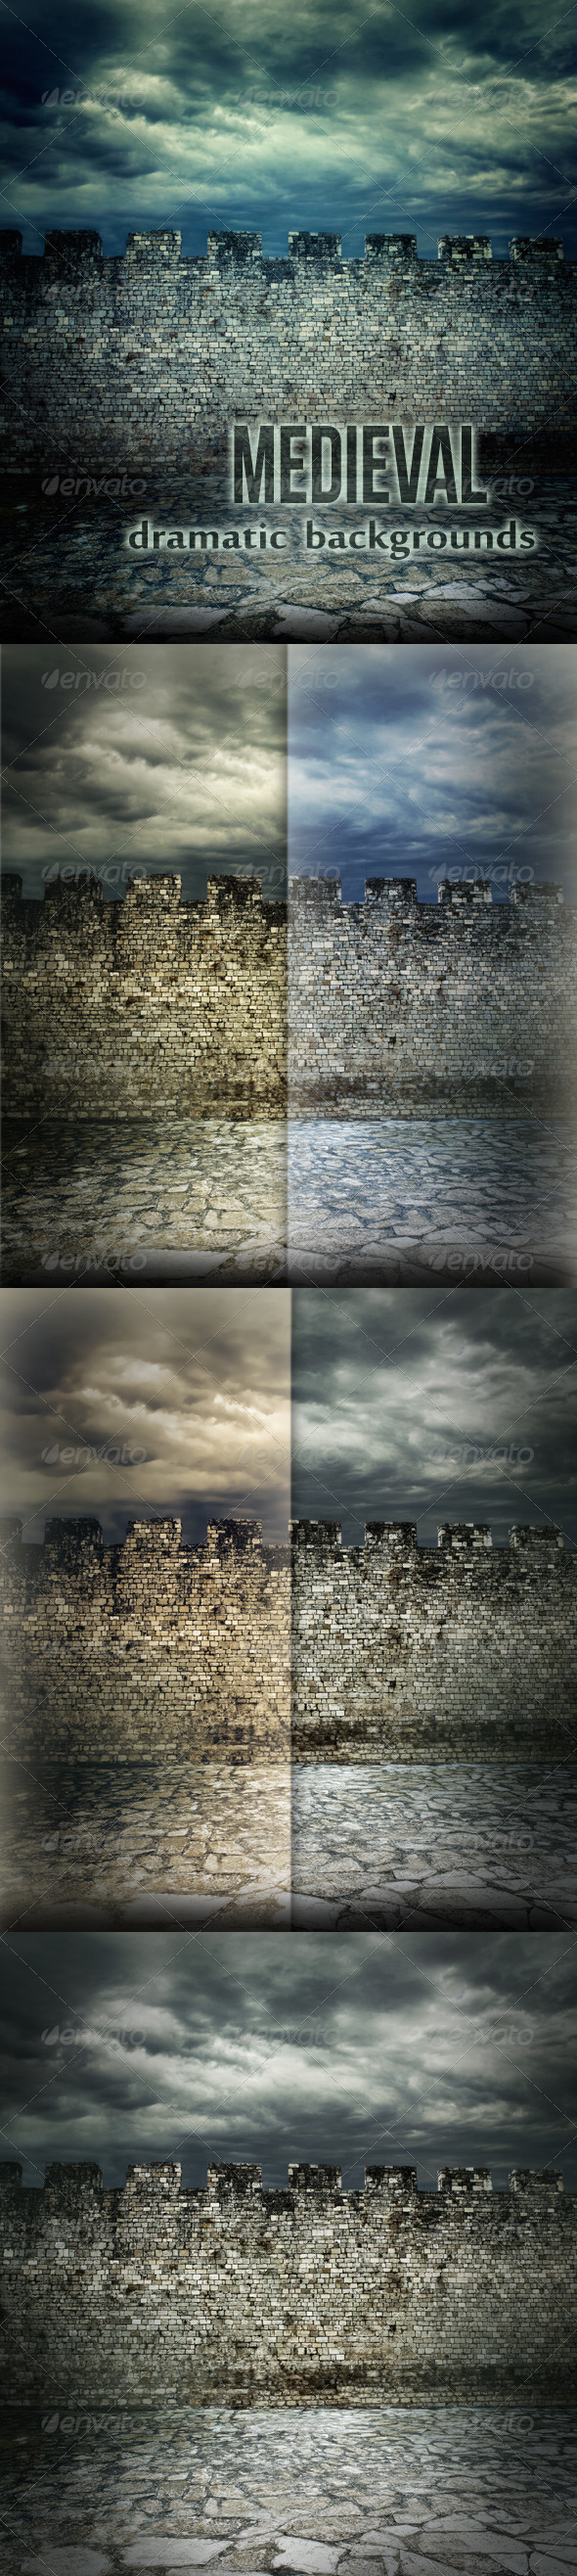 GraphicRiver Medieval Wall Dramatic Backgrounds 1084911